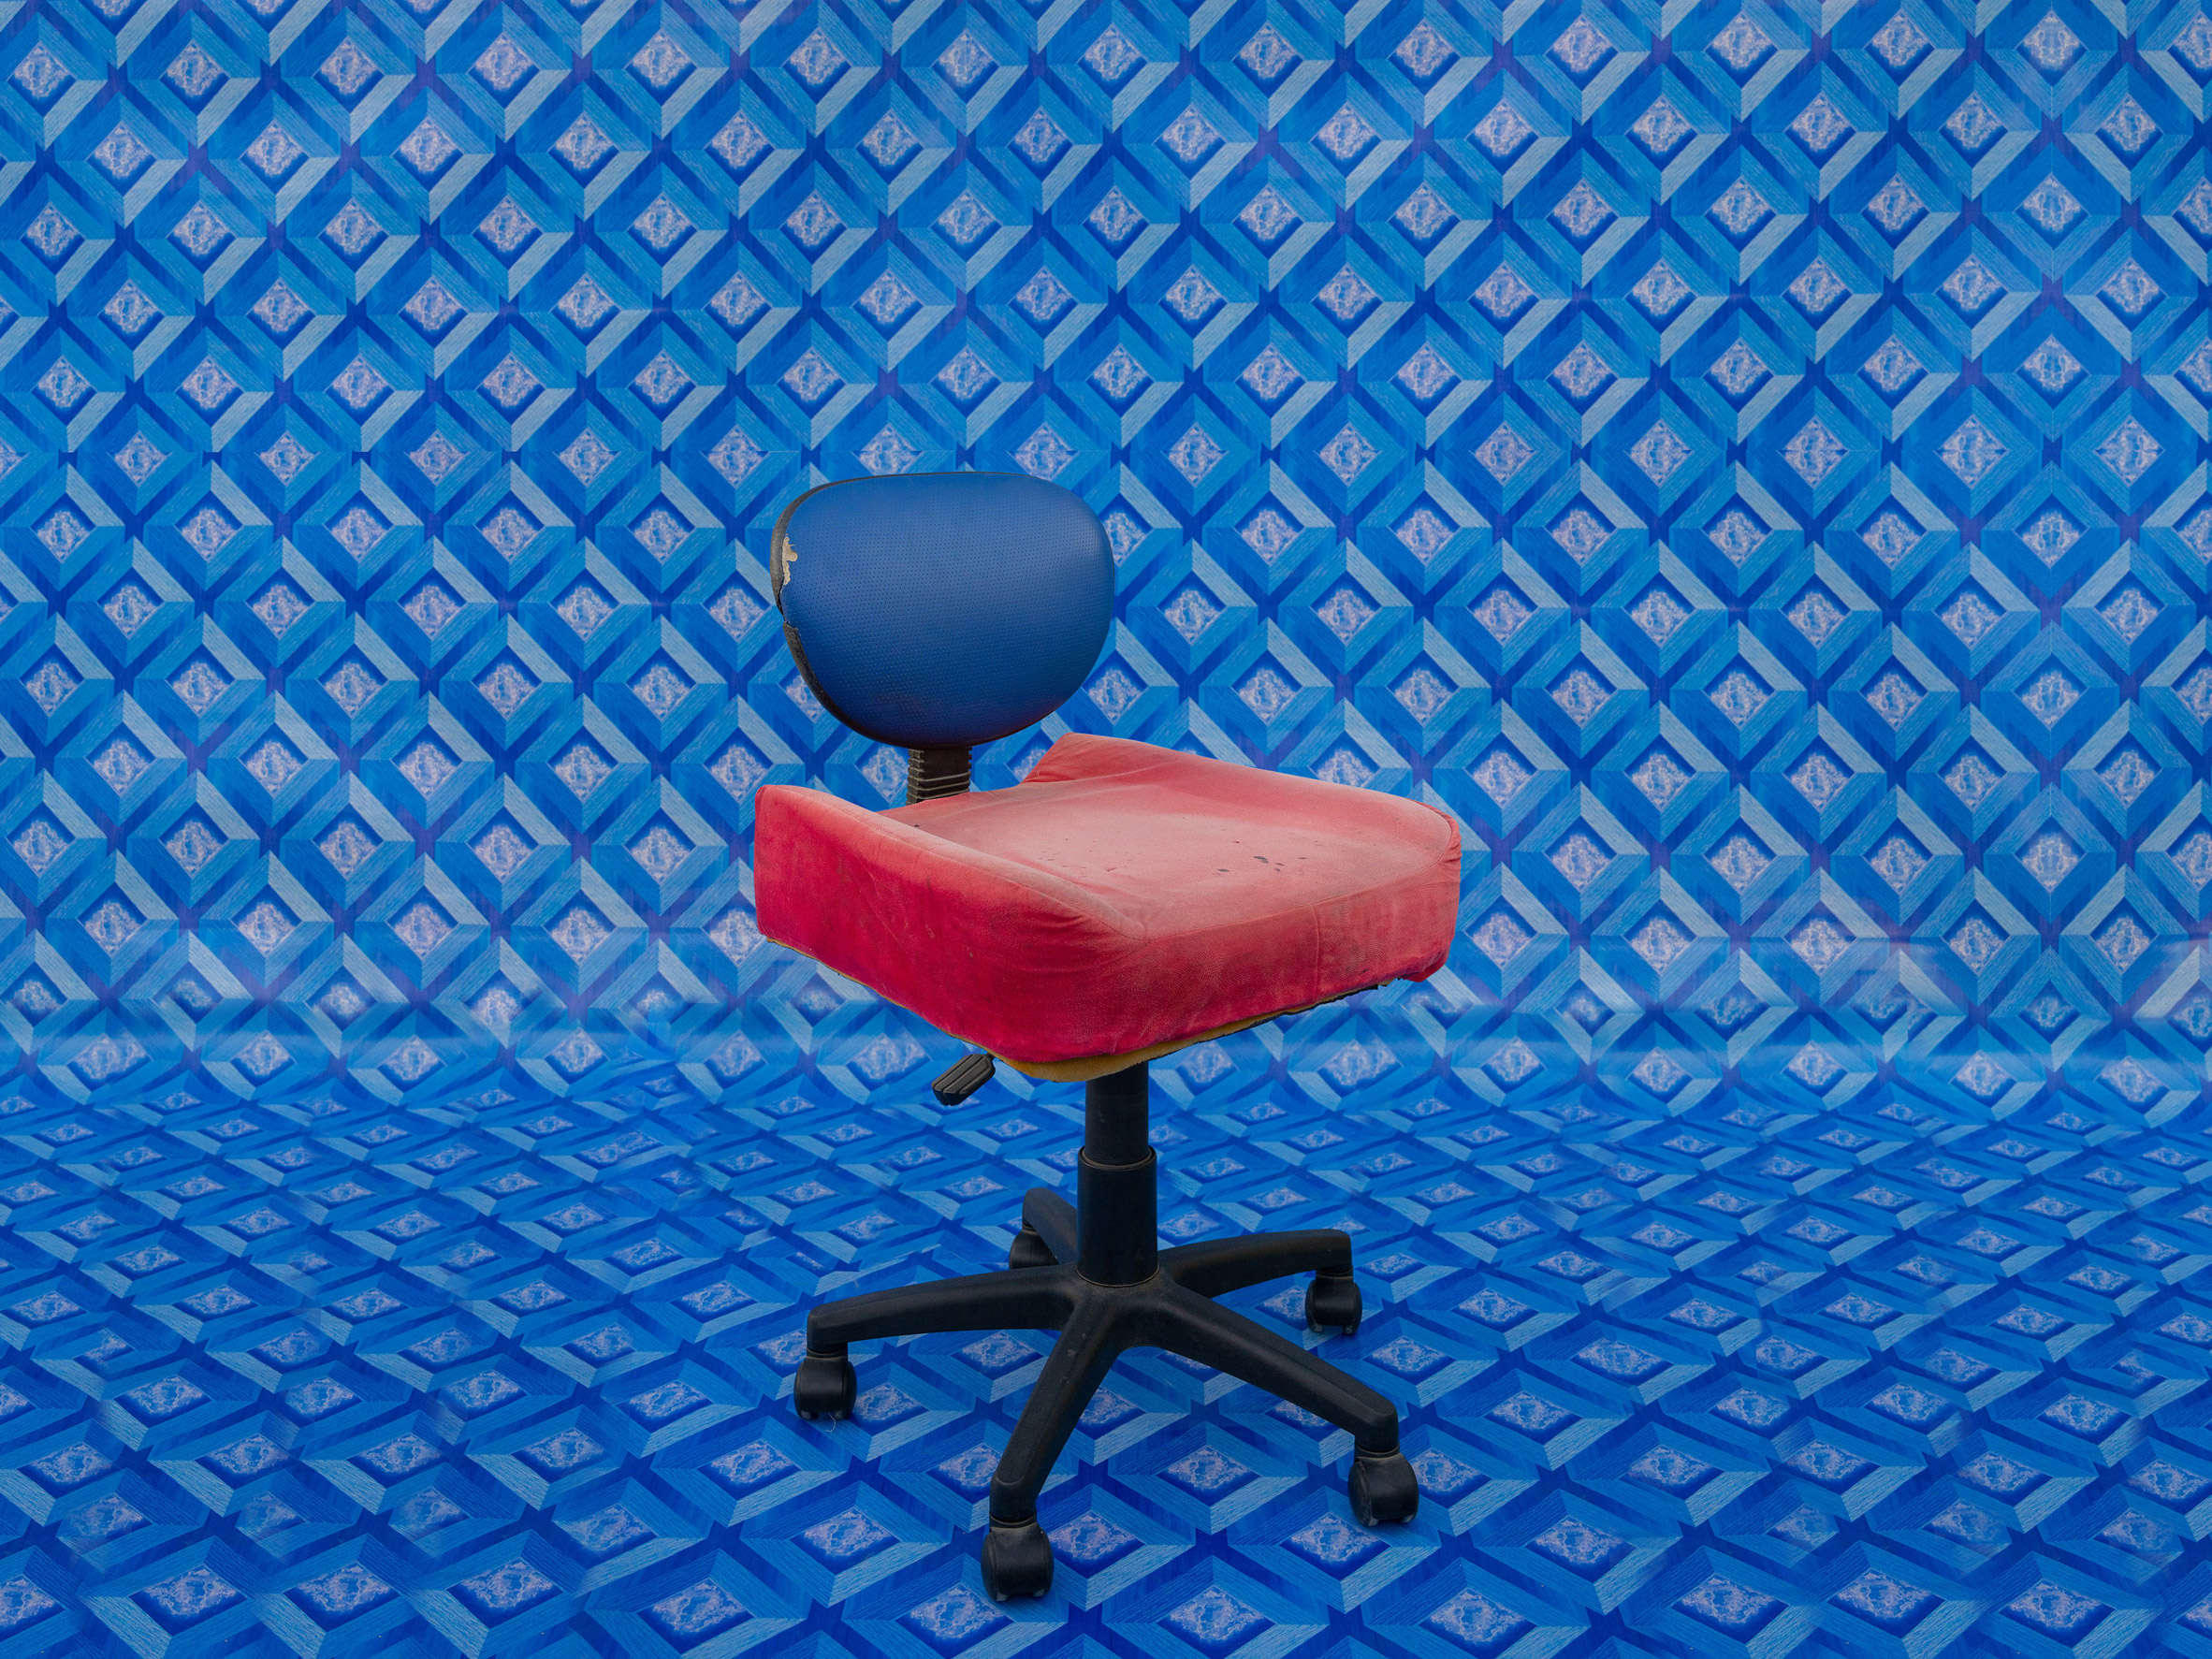 Auto Beauty Car Accessories chair from How to be at Rest installation by Christopher Benton